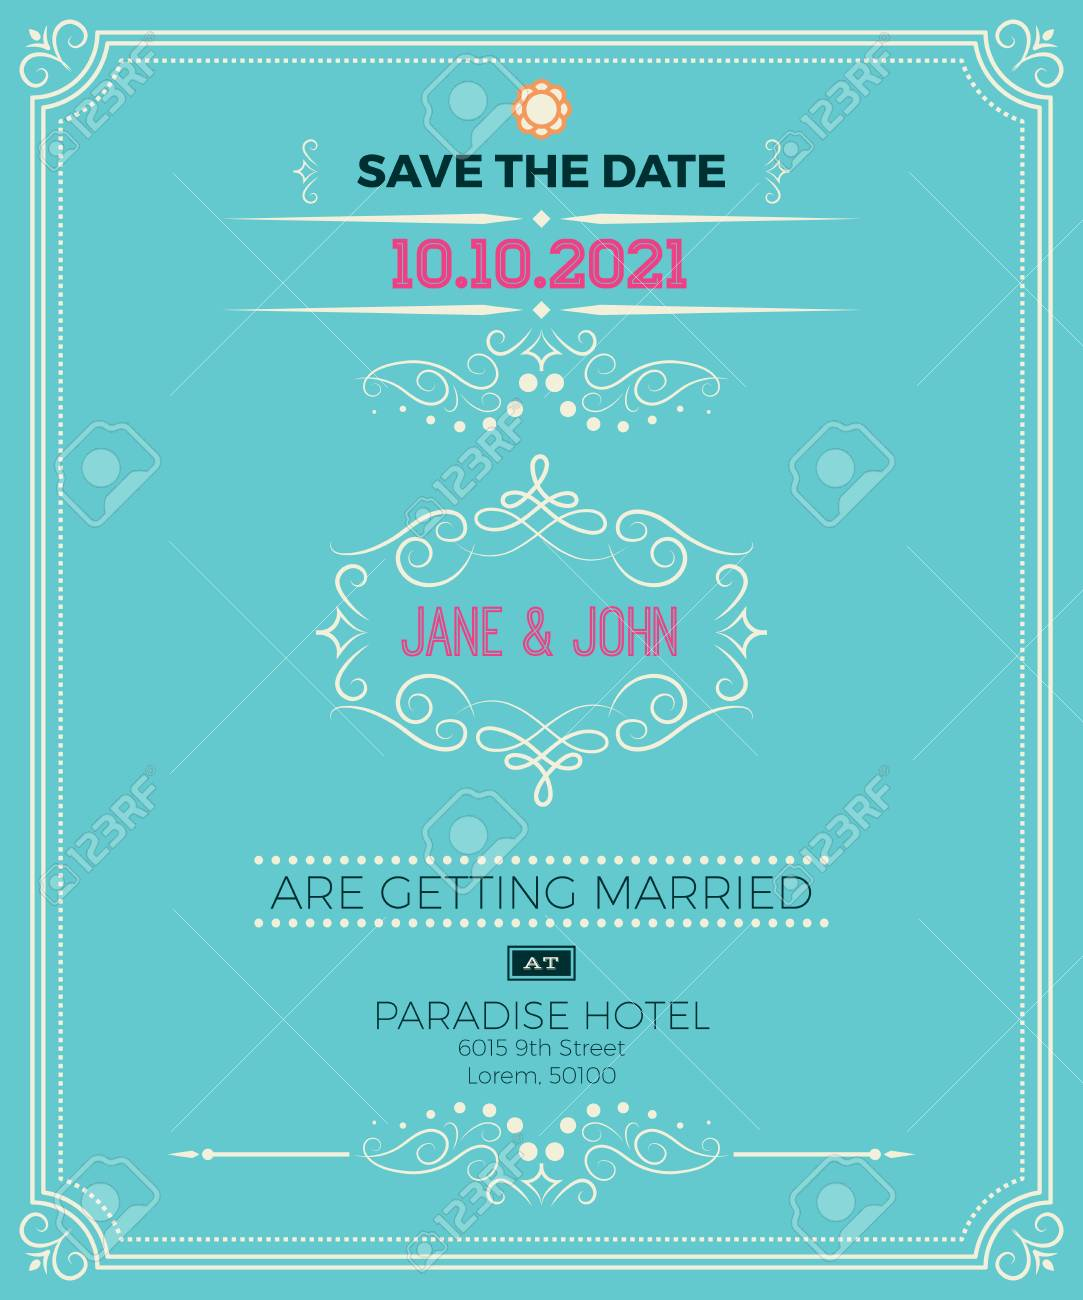 Vintage Wedding Invitation Card Template With Clean Simple - Simple wedding card template